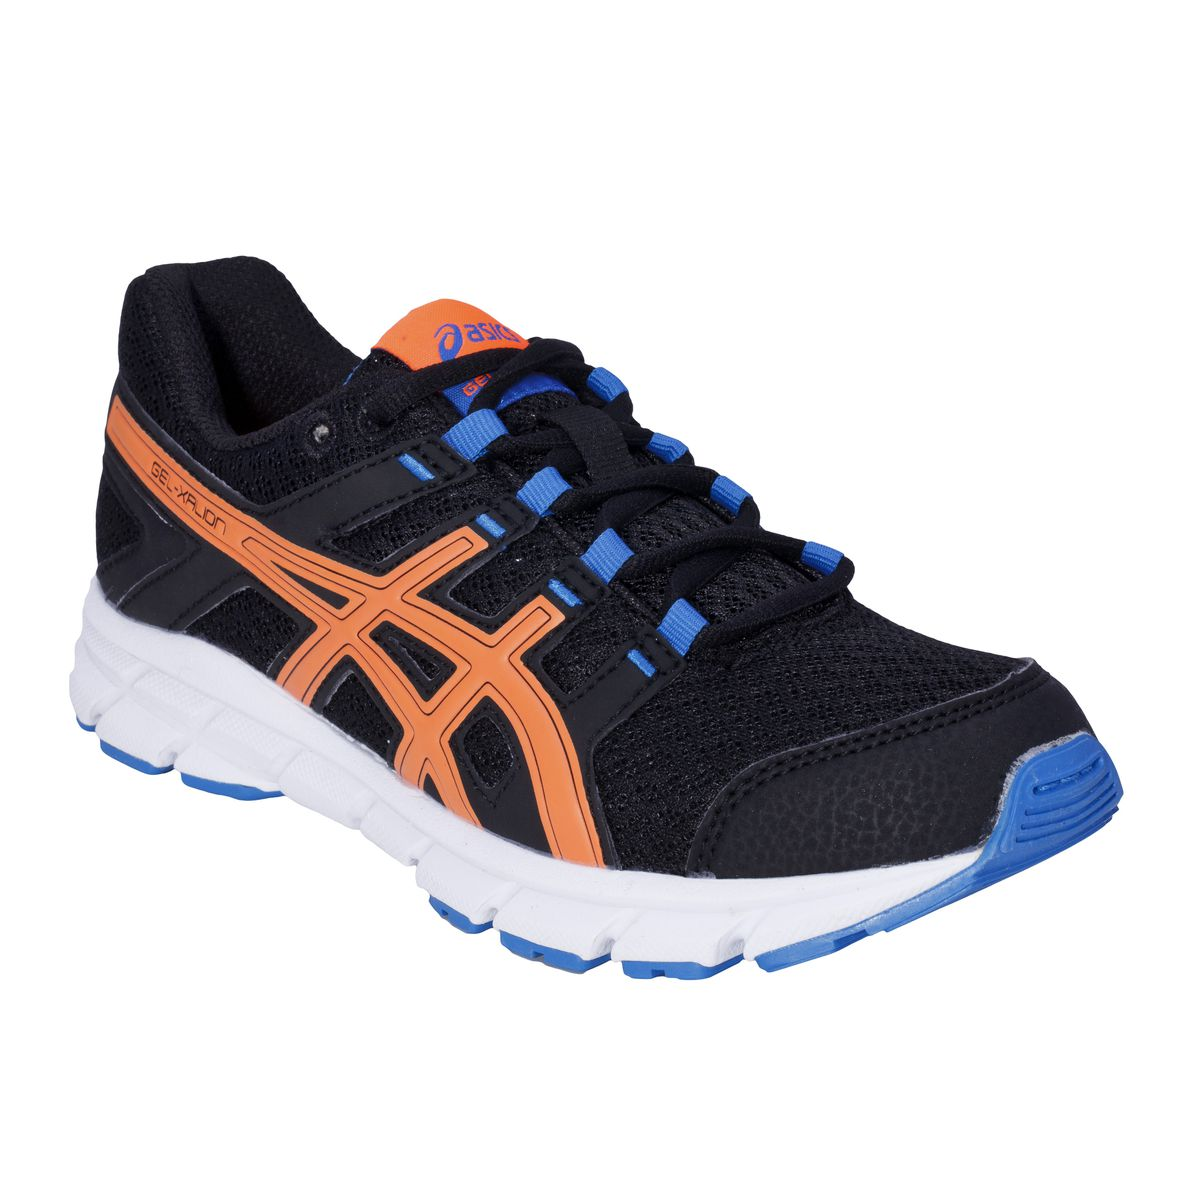 ASICS XALION low